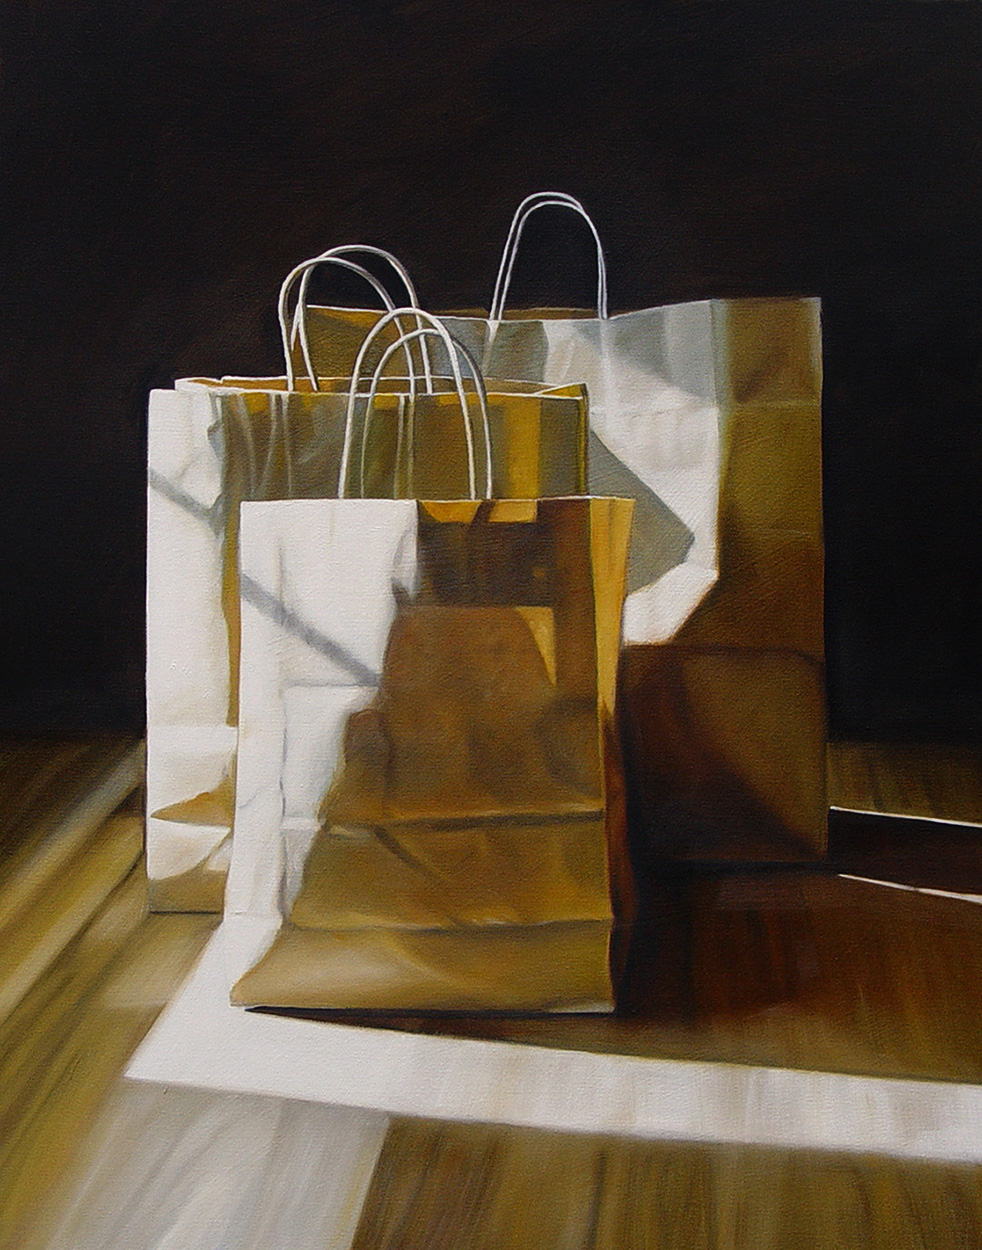 Three Bags  |  22 x 28  |  Oil on canvas